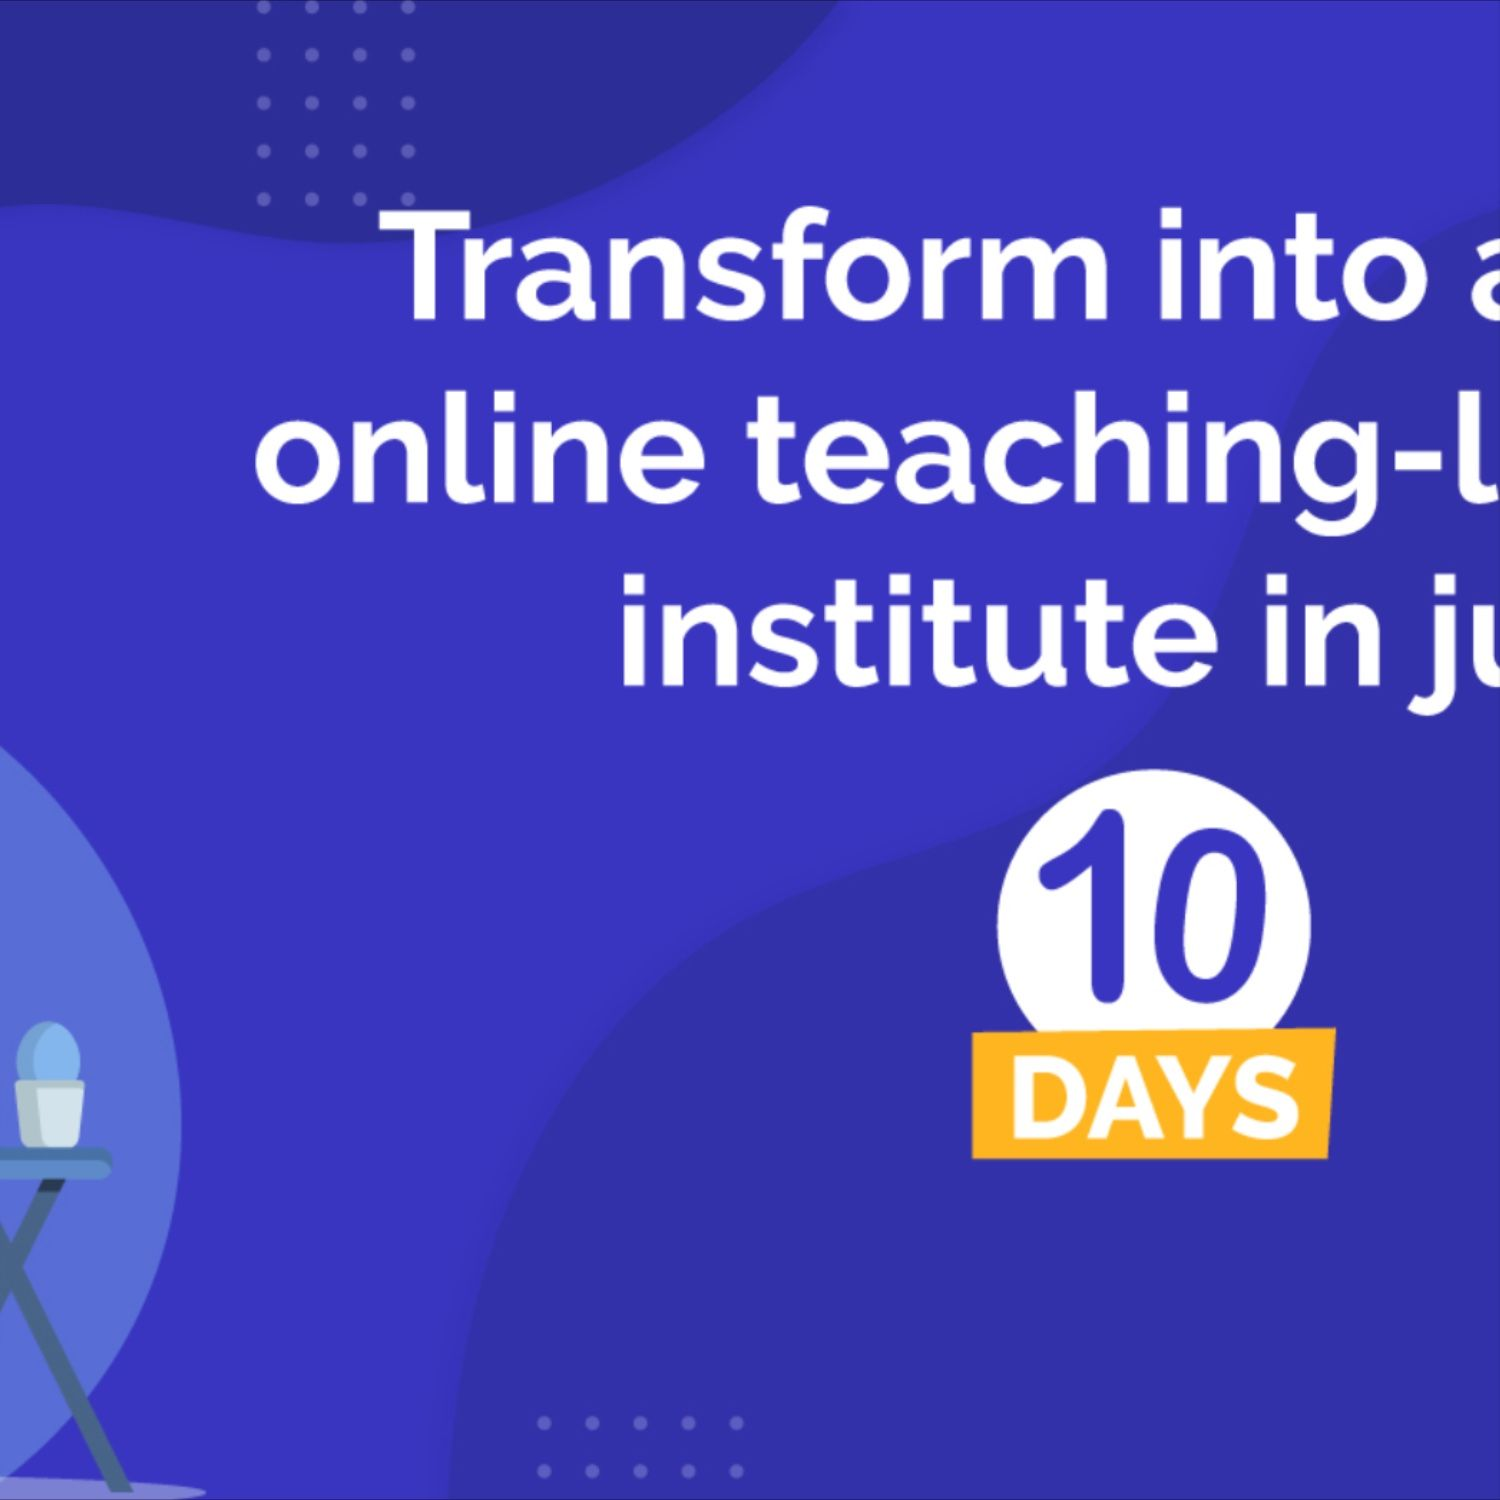 LoveMySkool can help you transform into a truly Online-Teaching Learning Instates in just 10 days. #LoveMySkool #LMS #EdTech #OnlineTeaching #OnlineLearning #VideoConference #OnlineClass #K12 #eLearning